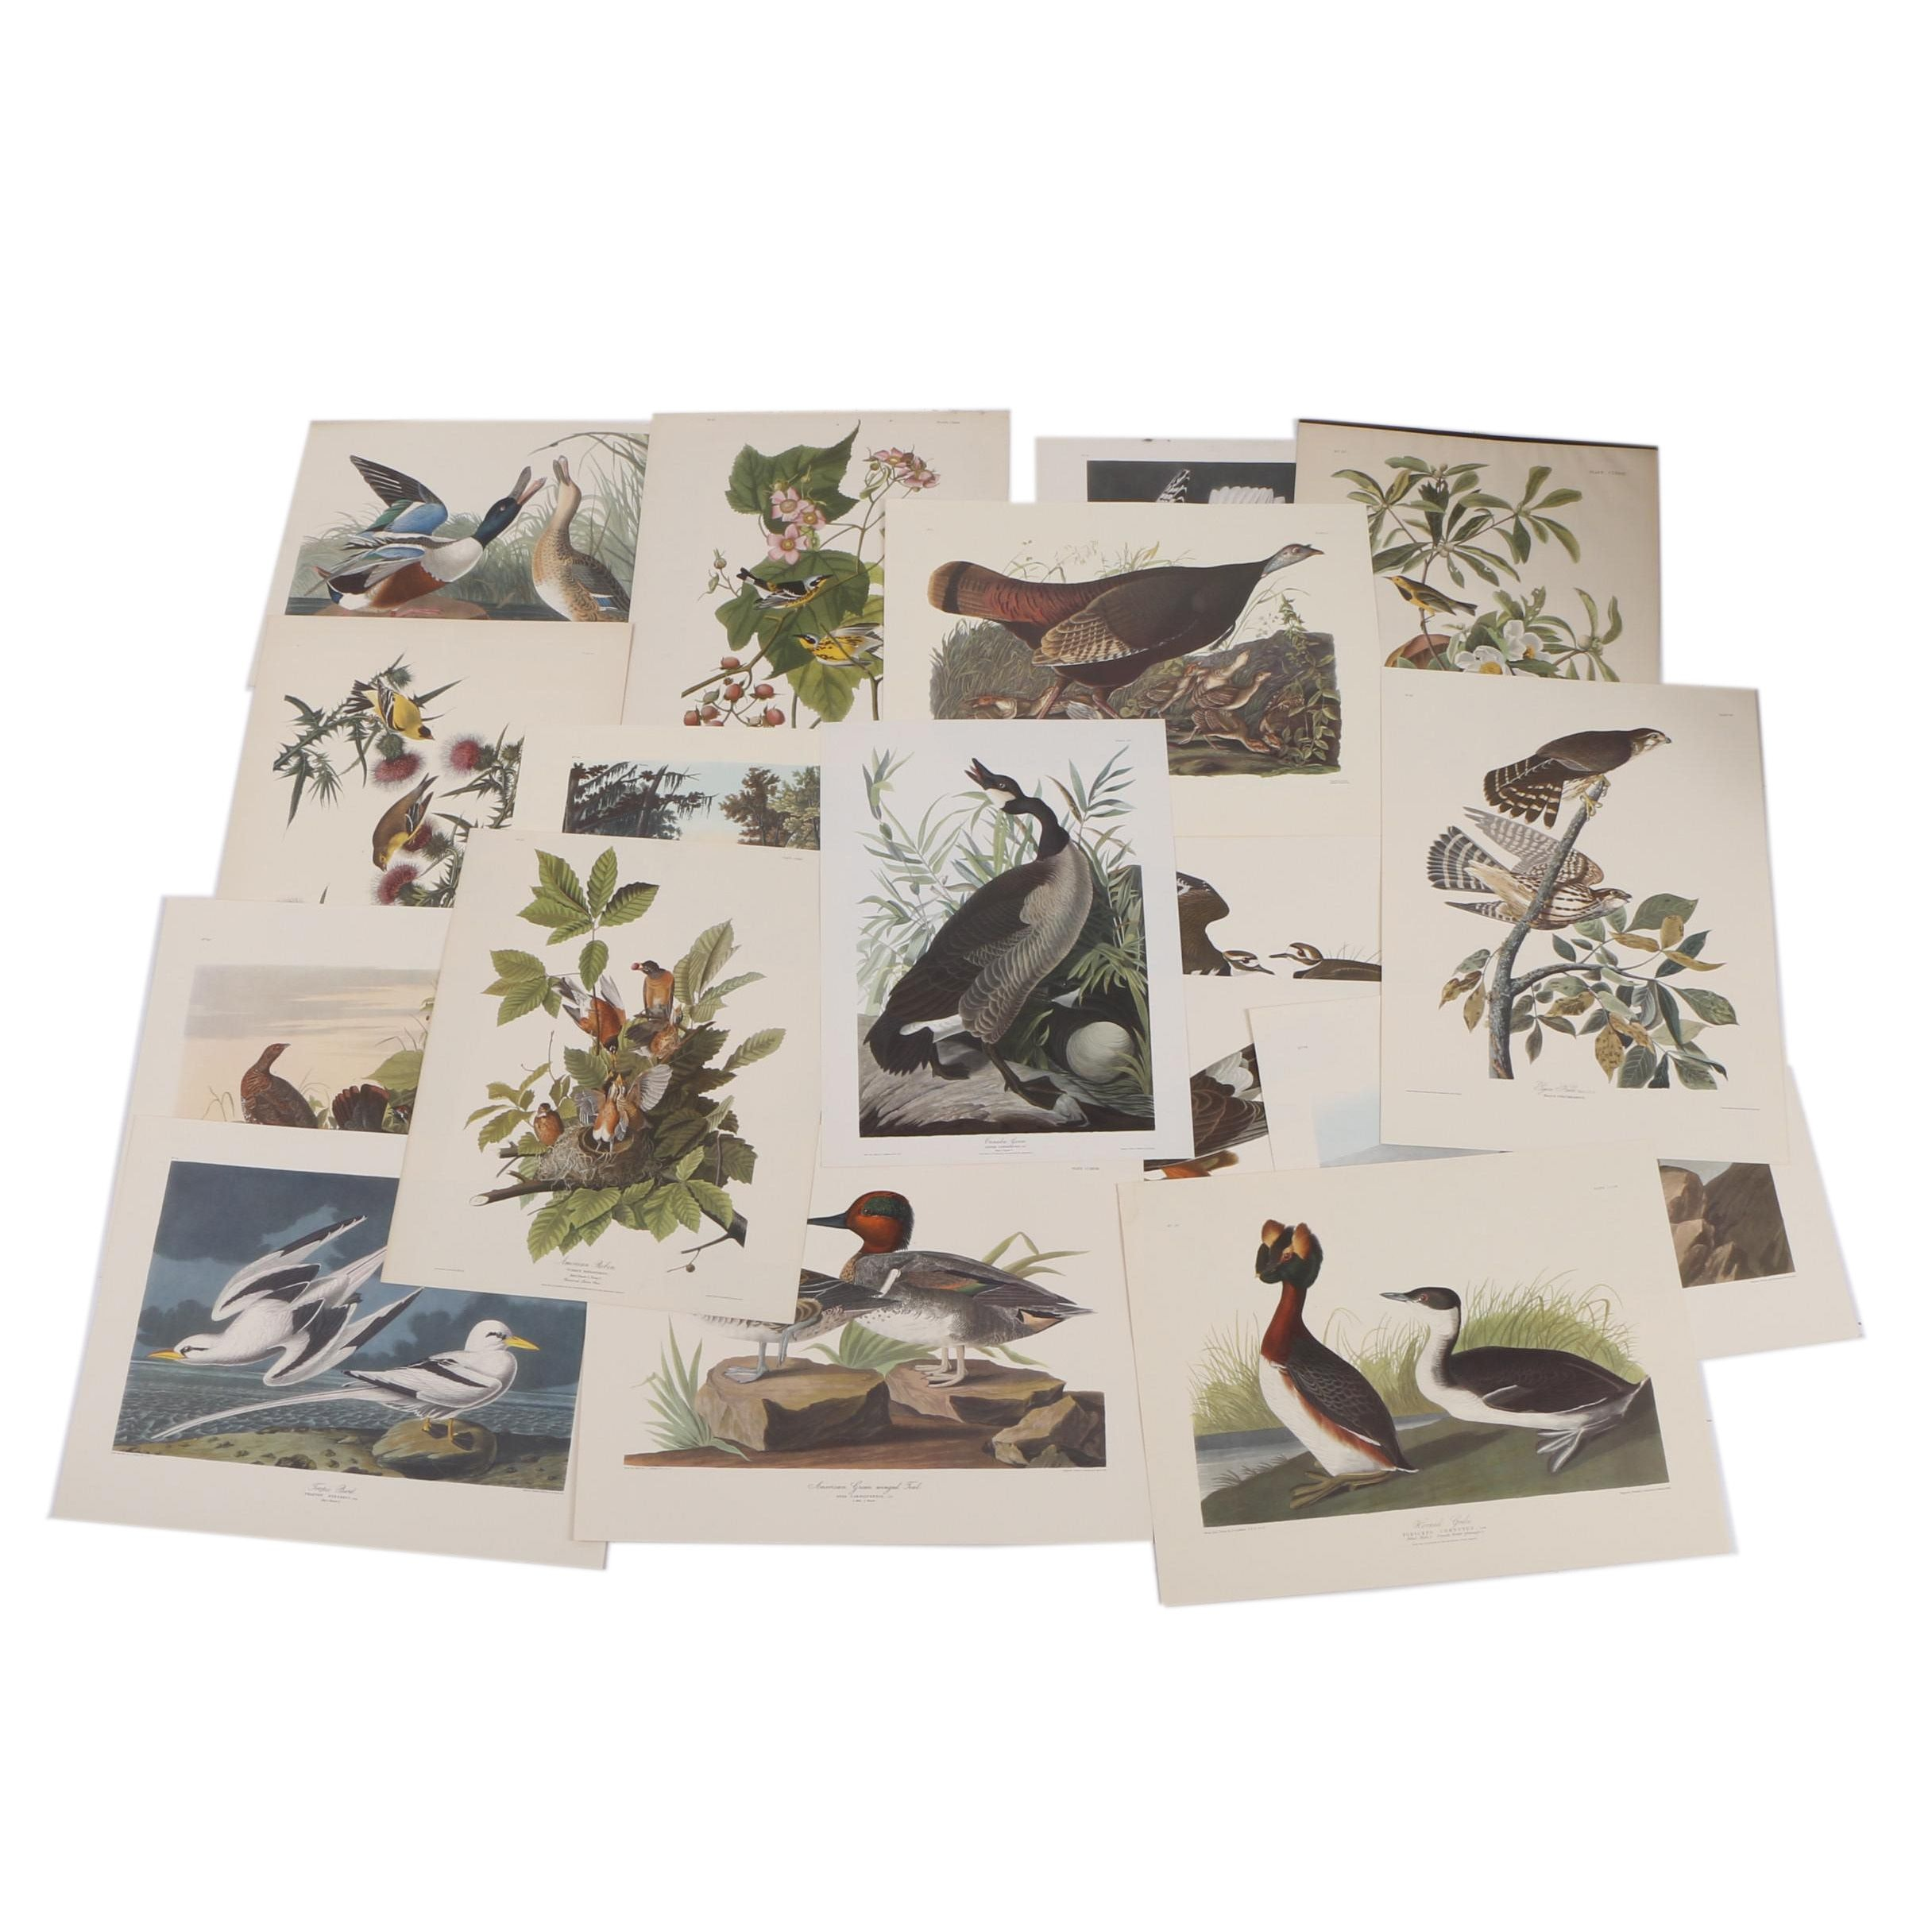 Offset Lithographic Reproduction Prints After John J. Audubon